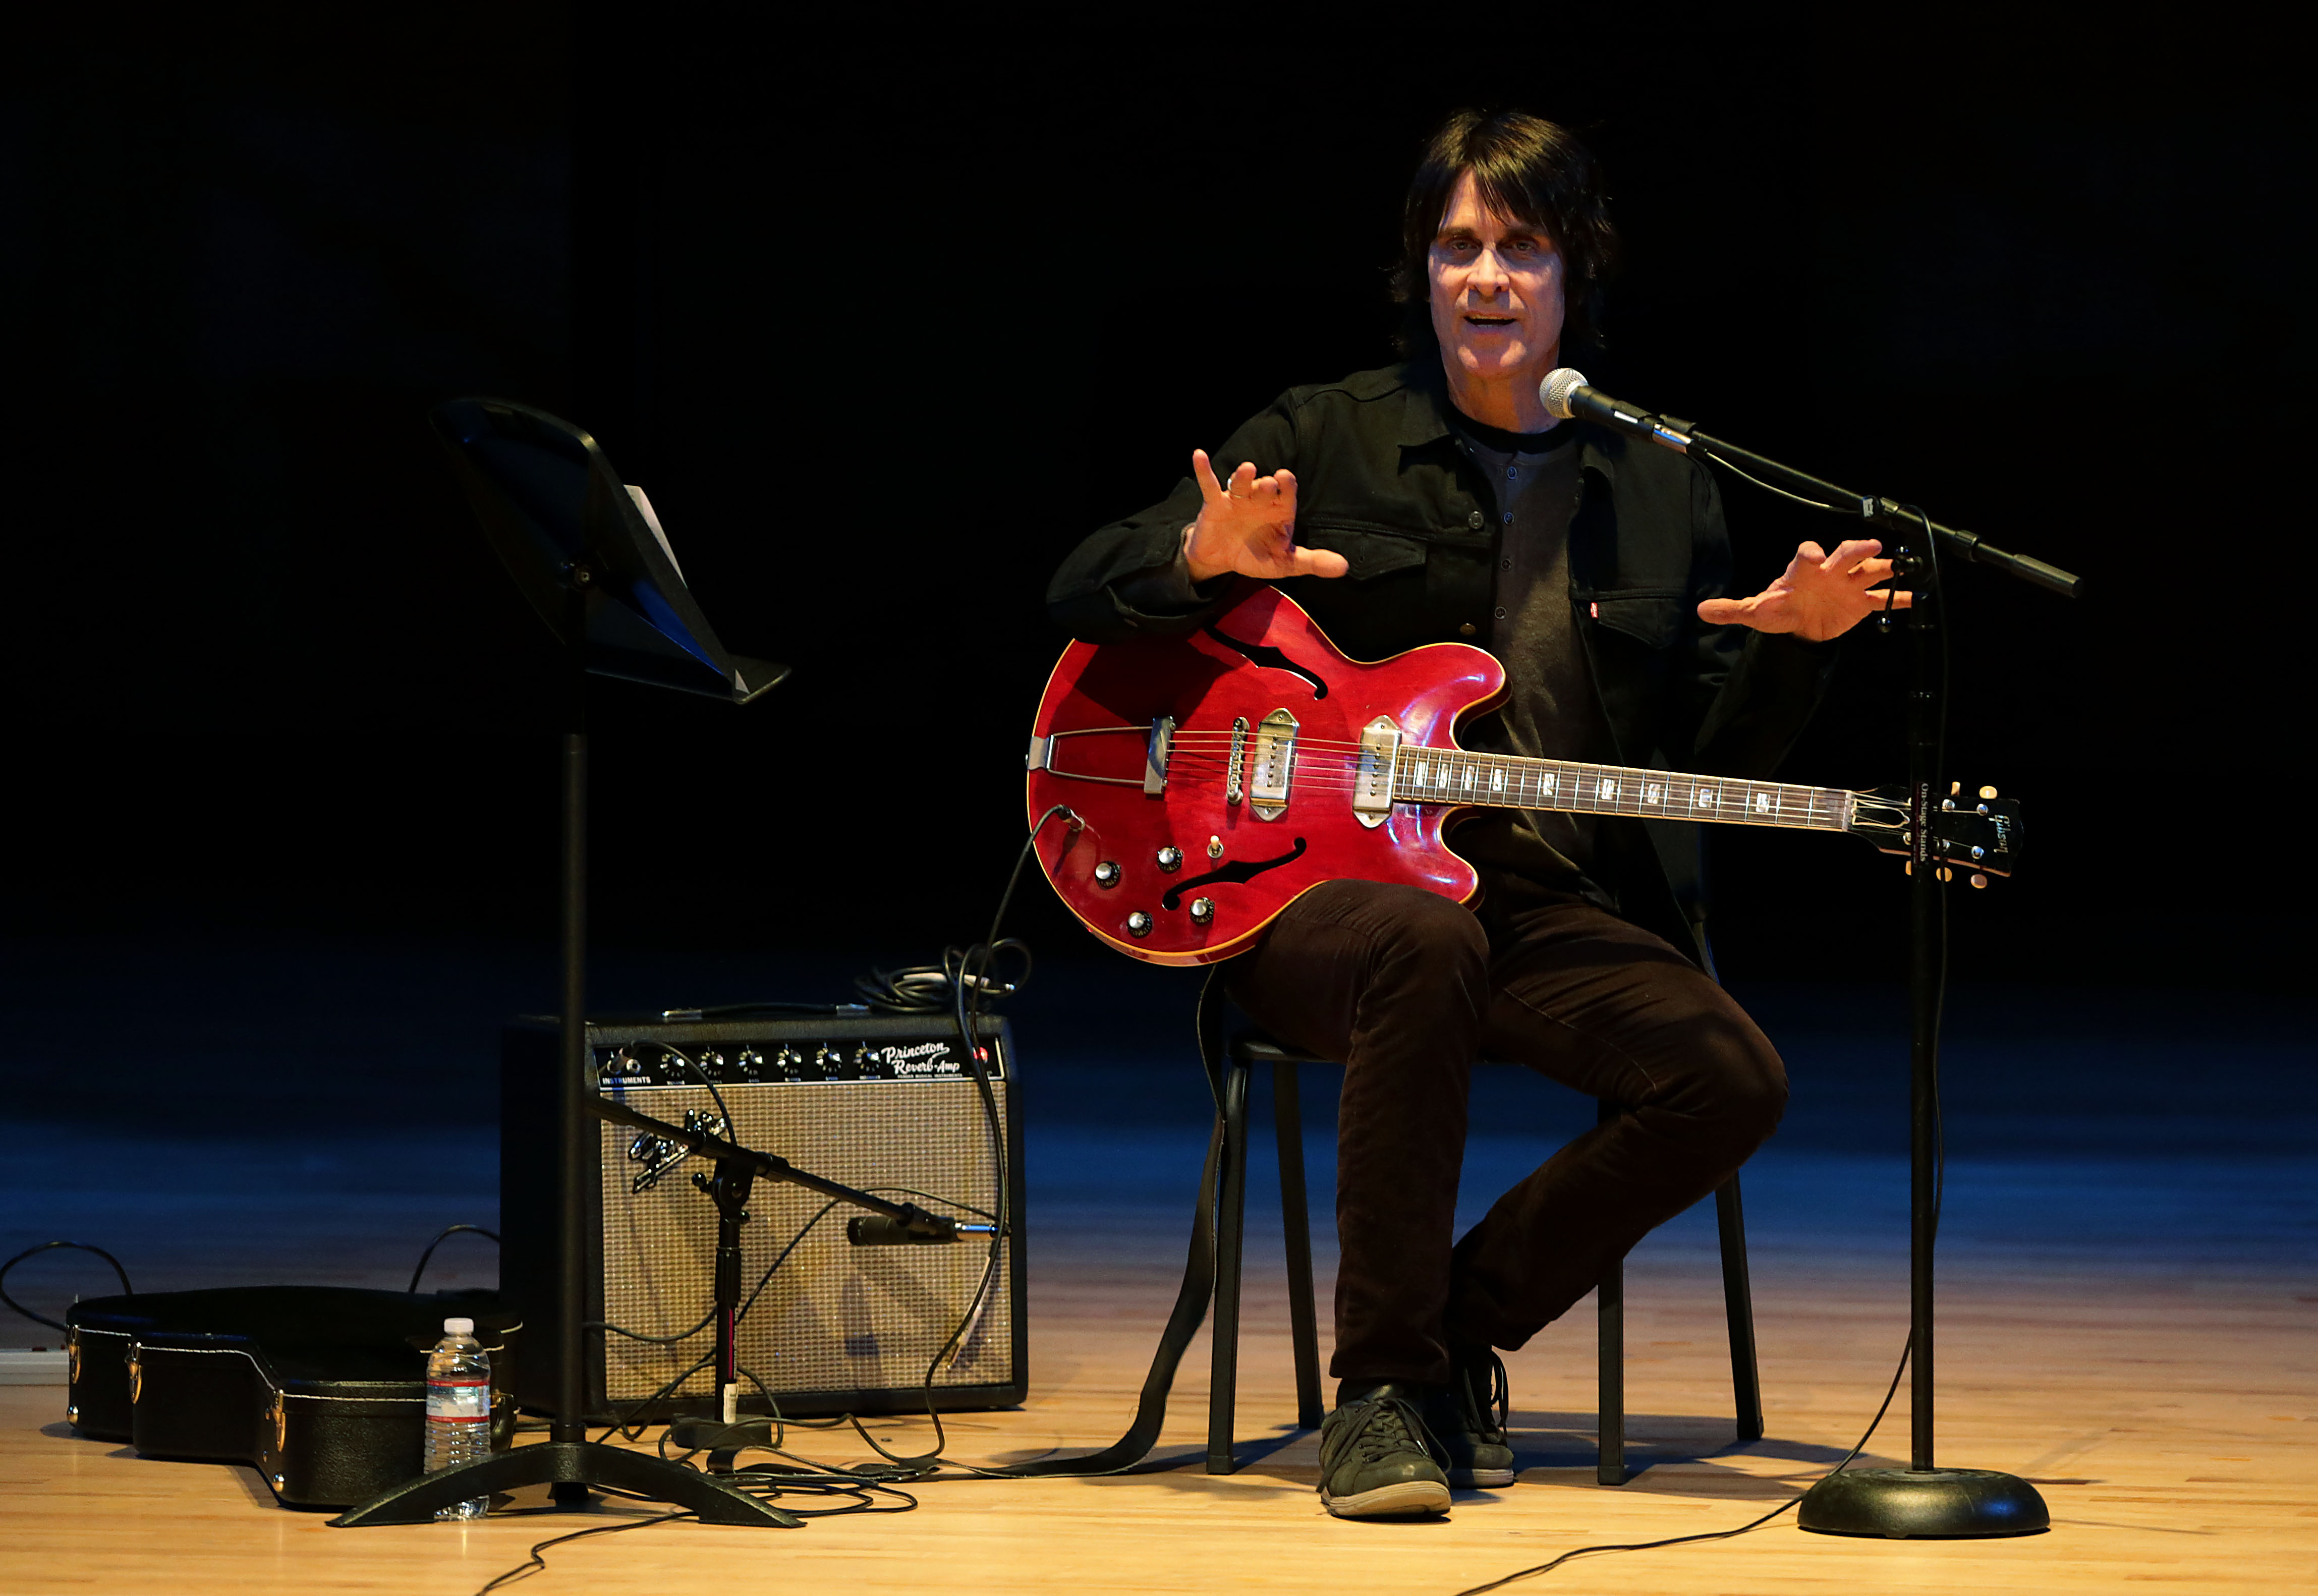 Paul McCartney's guitarist shares his musical journey with Riverside ...